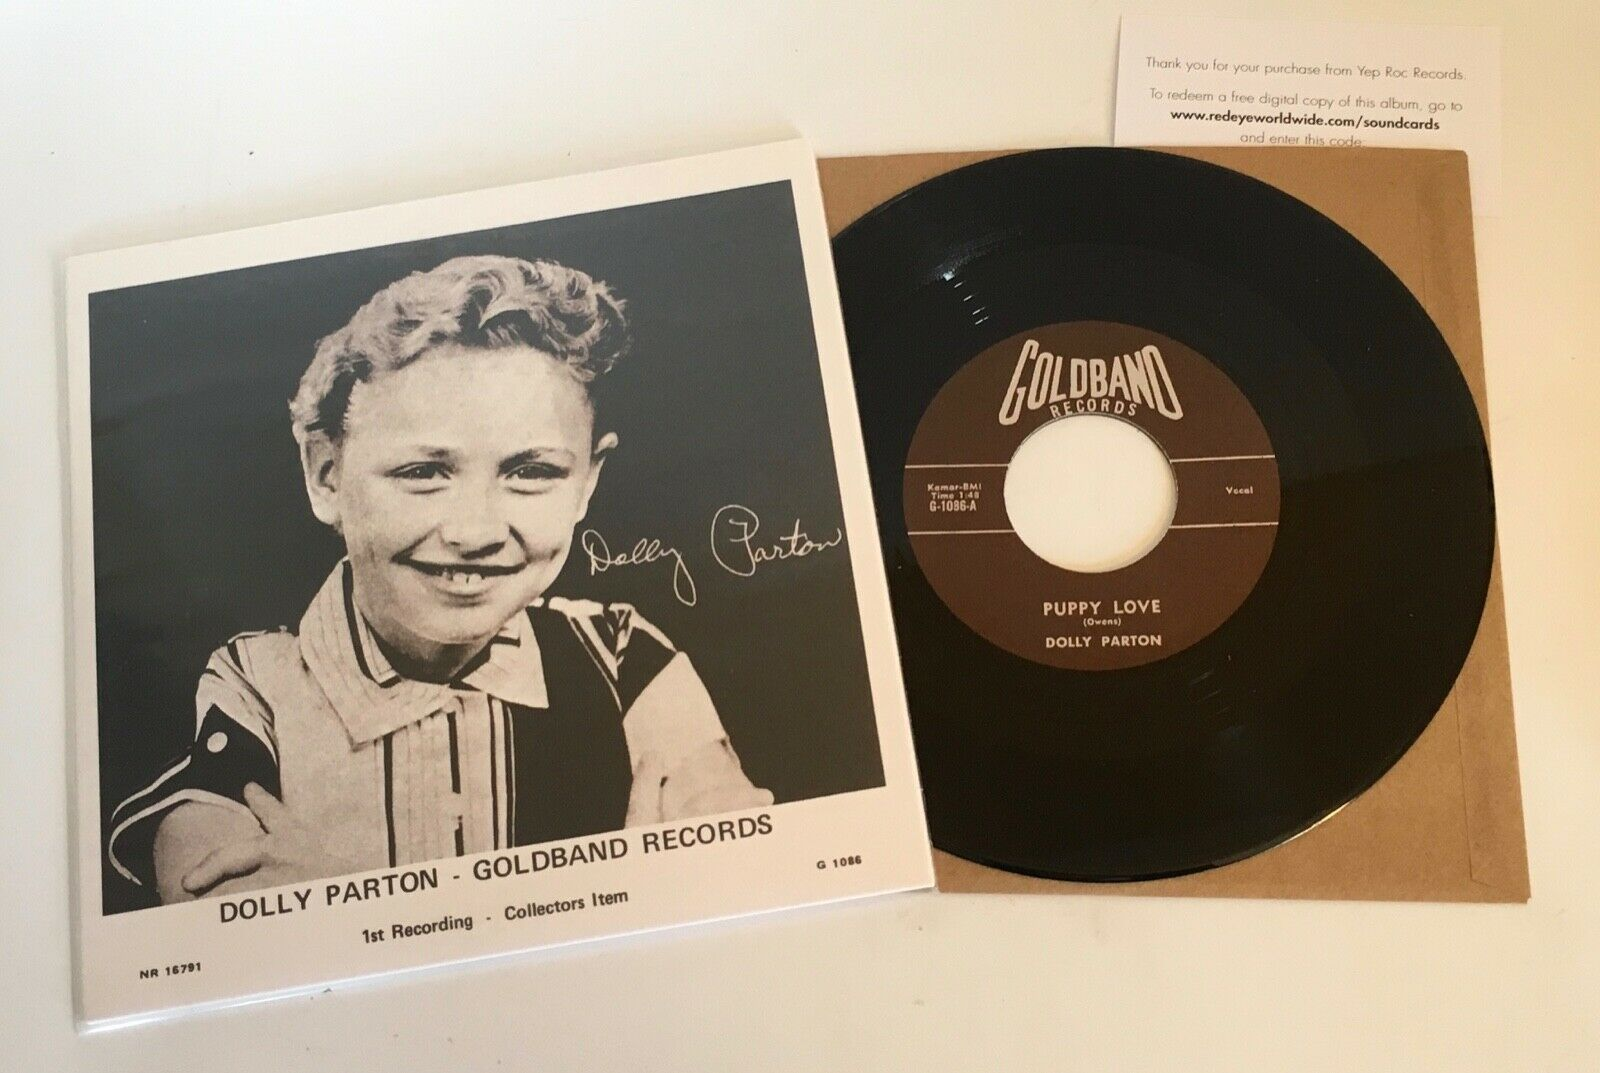 """Dolly Parton First recording / Puppy Love / 2017 release 7"""" 45 & PS Mint"""